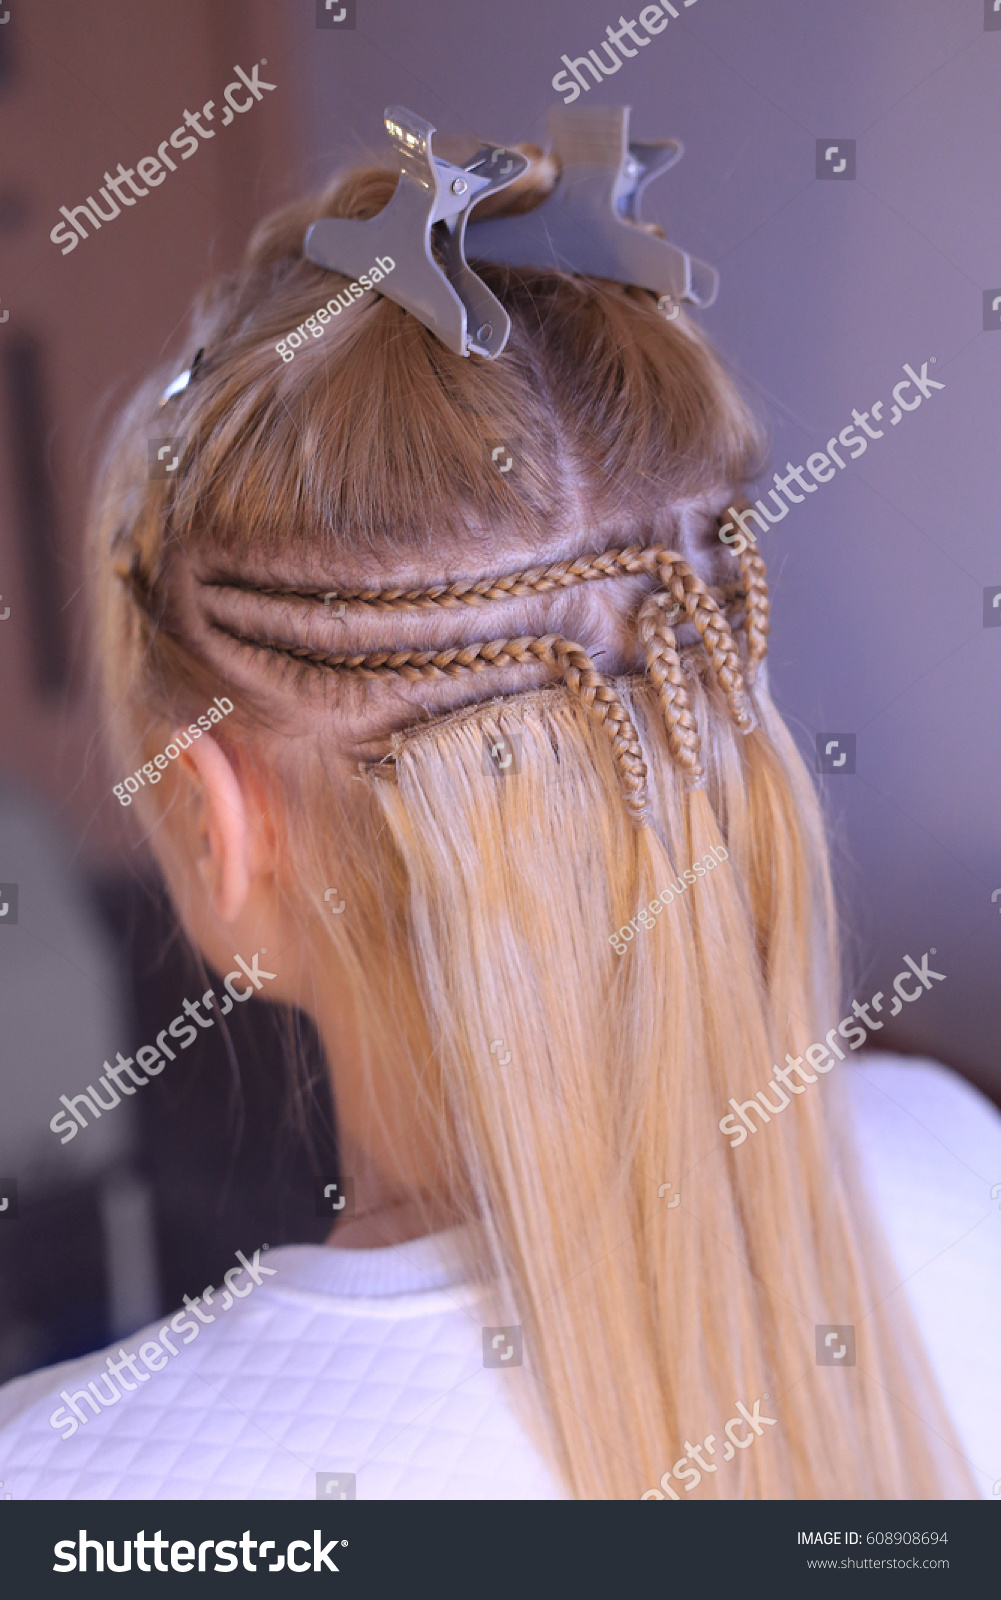 Hair Sewn On Pigtail Hair Extensions Stock Photo Royalty Free